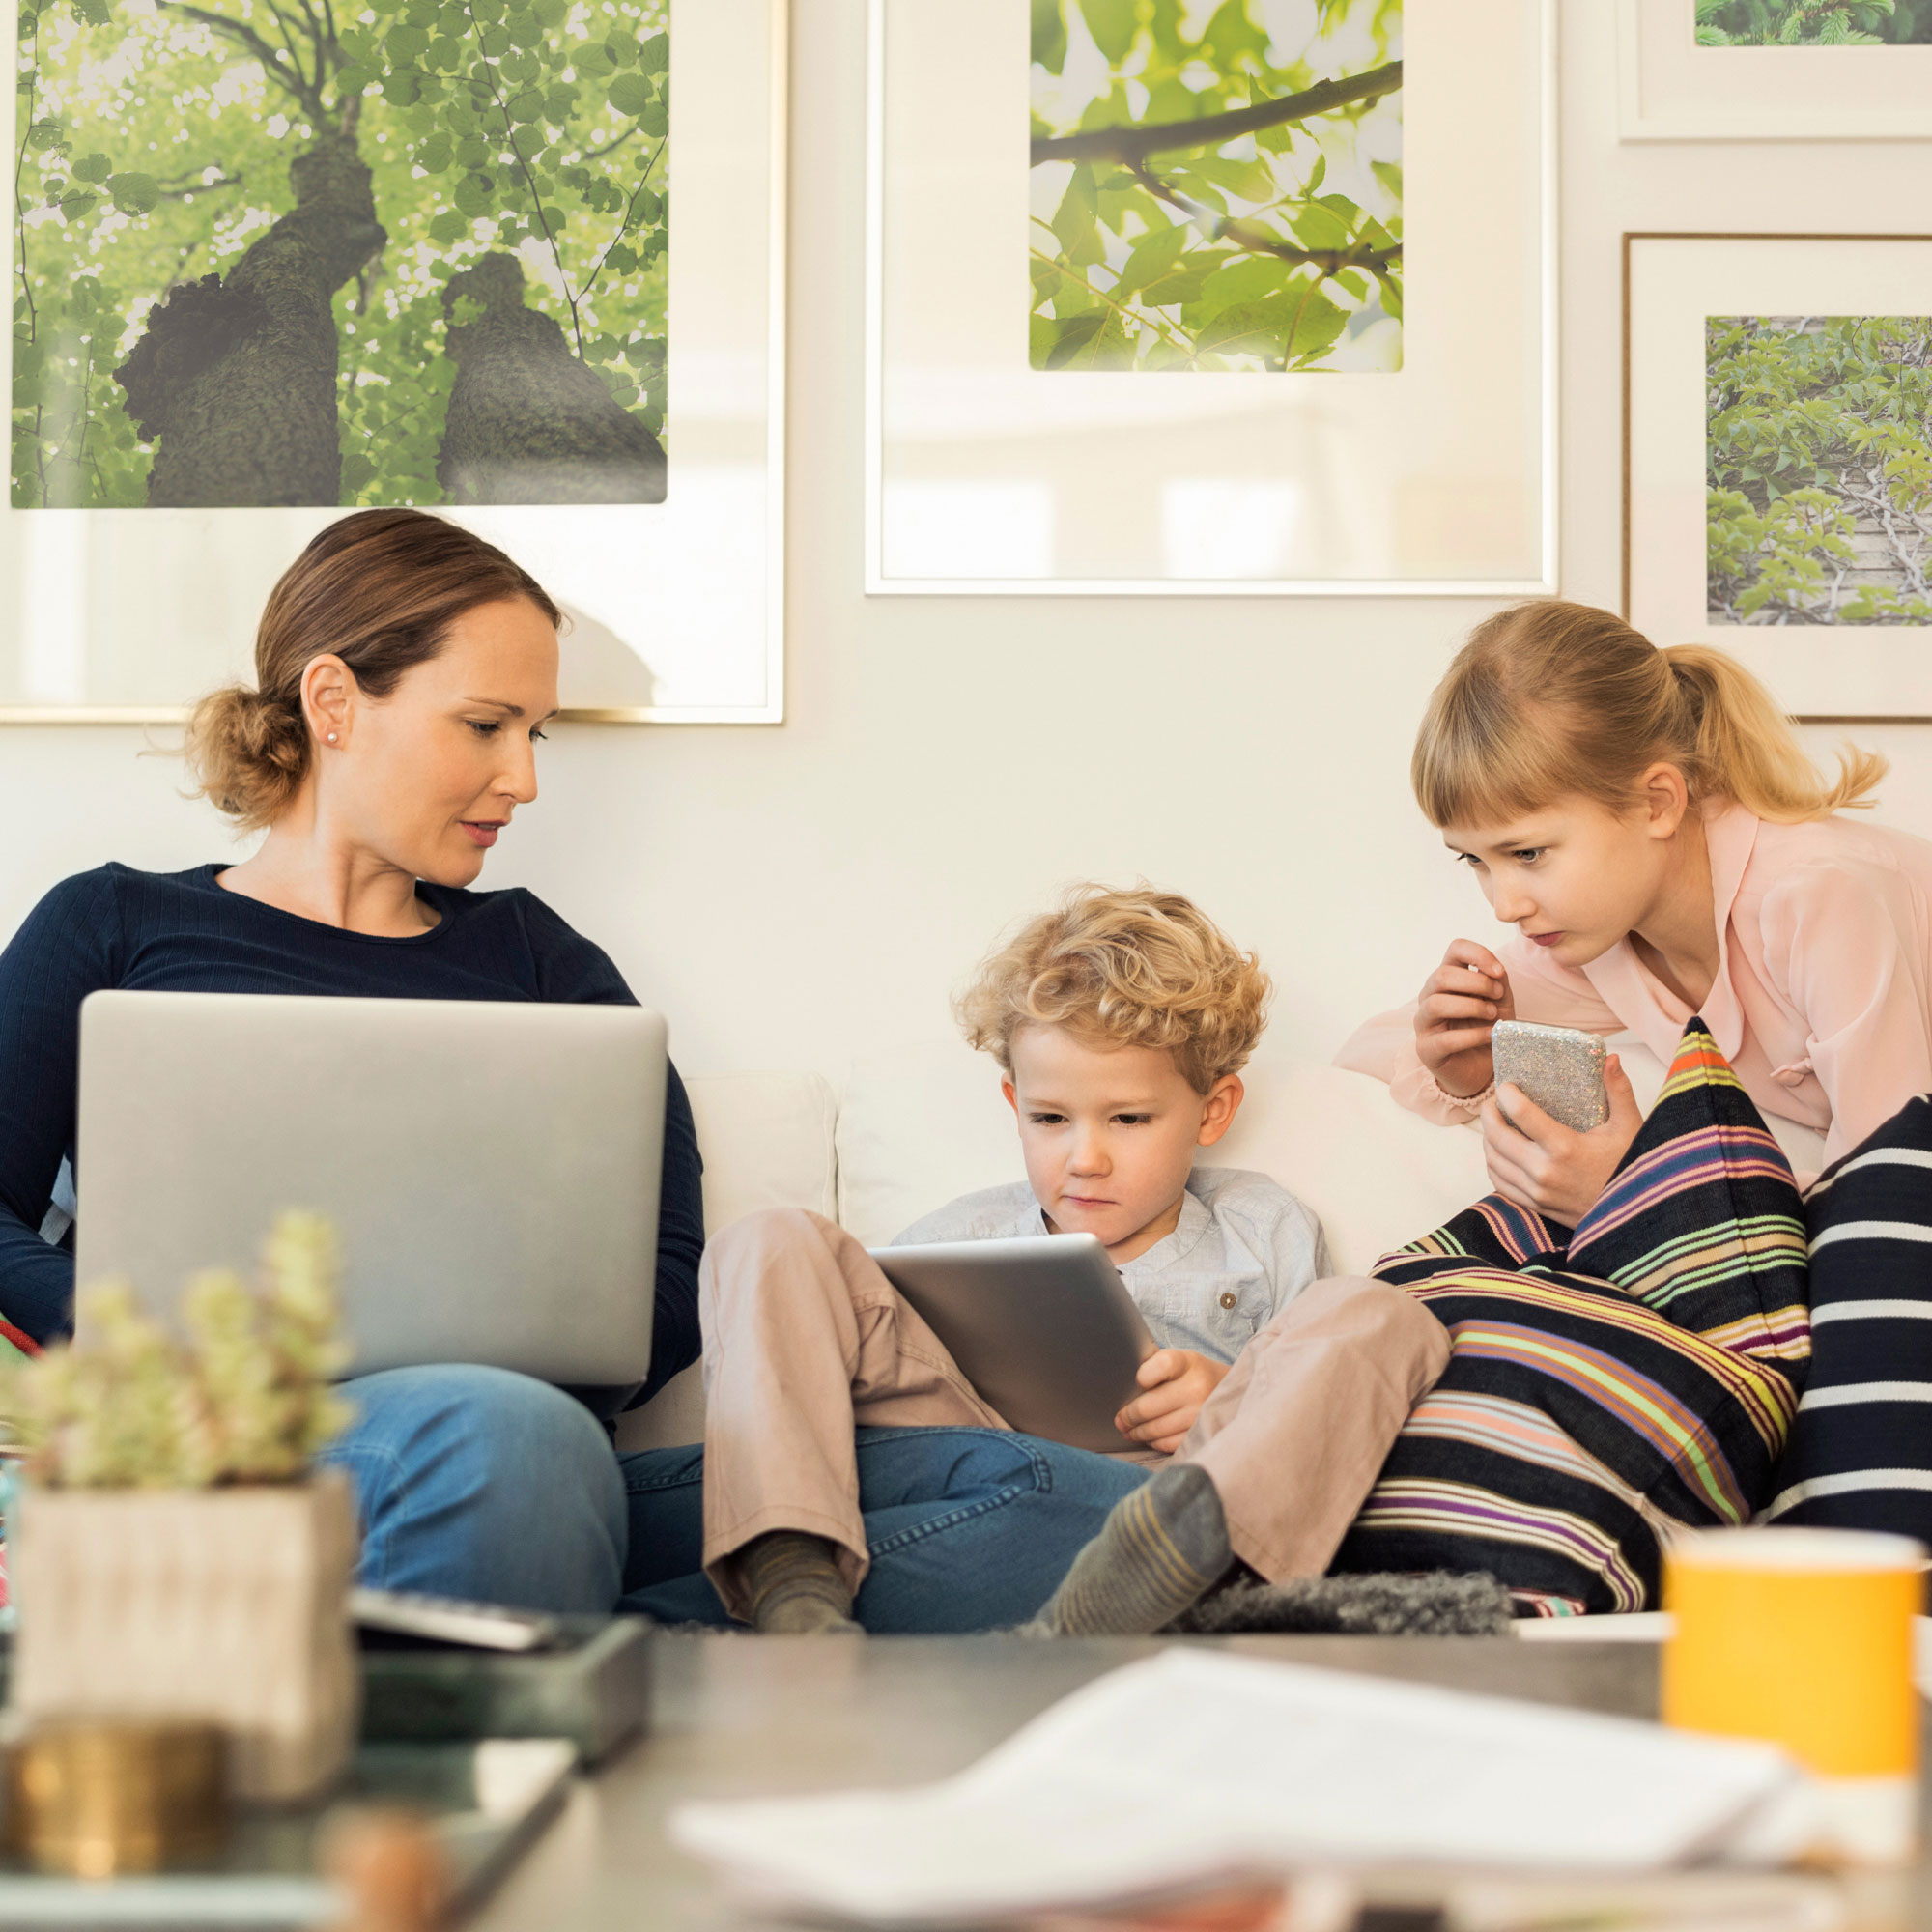 Mother with two children looking at different devices.